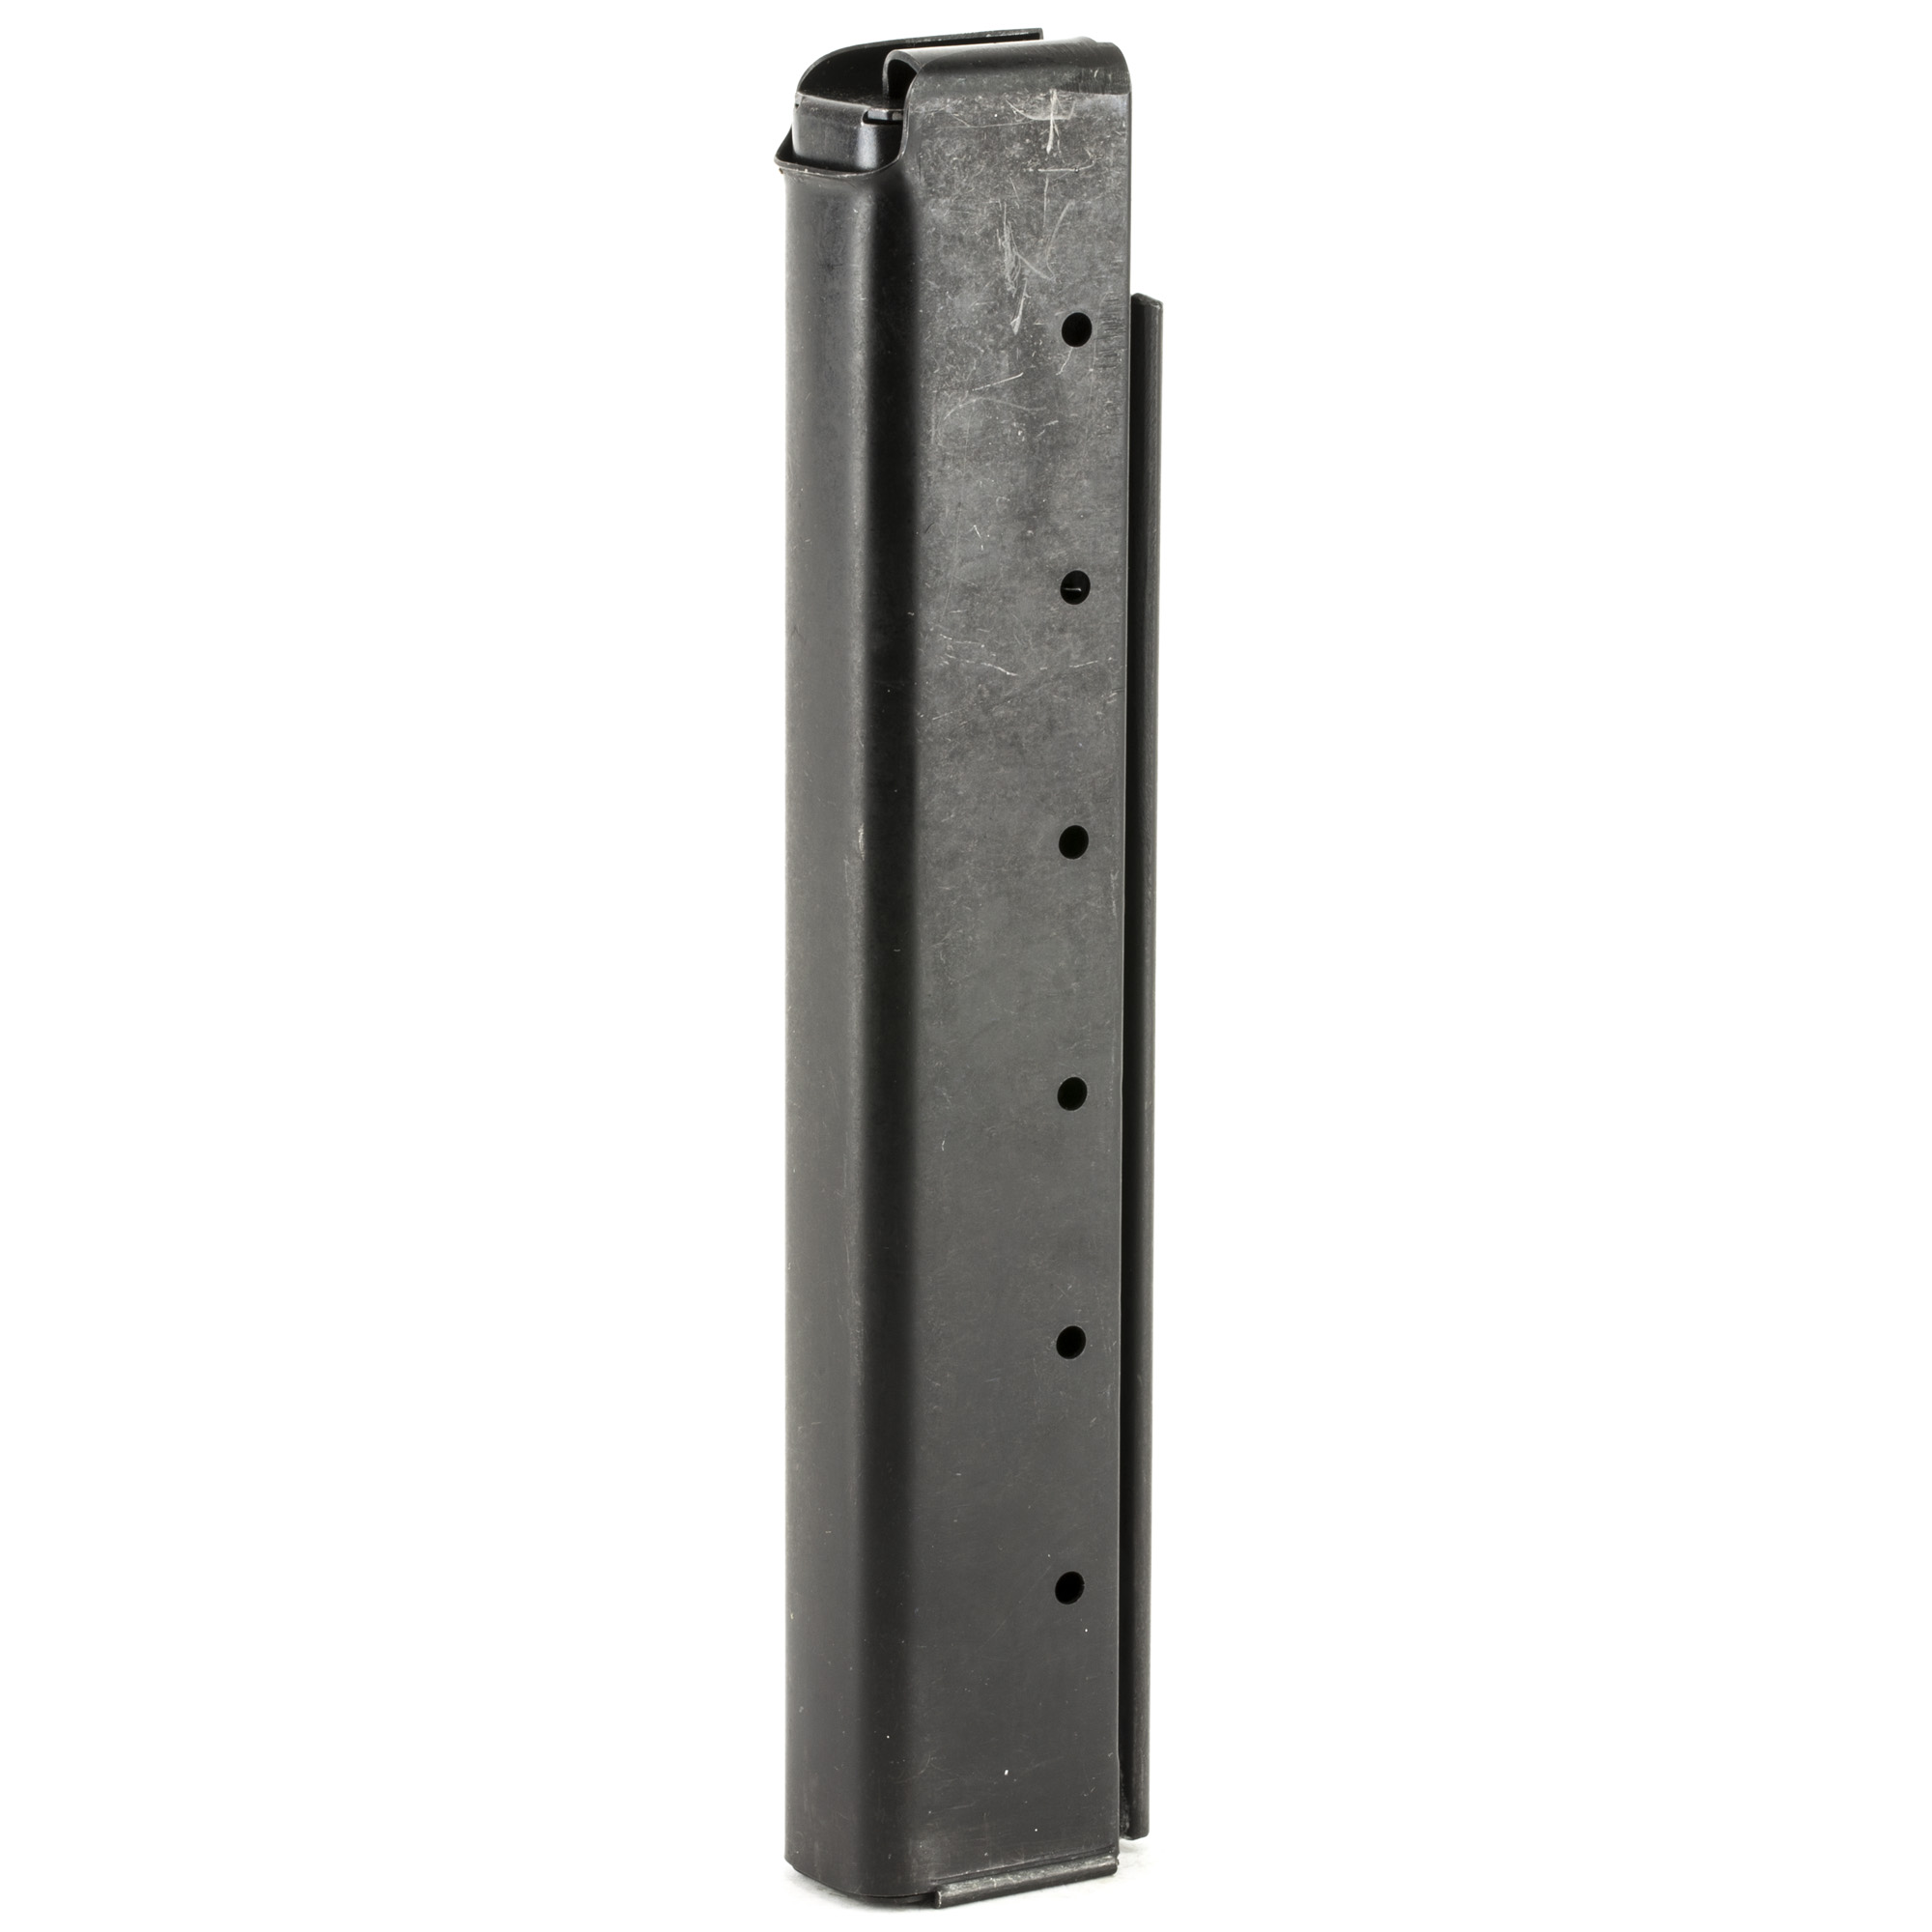 This Auto Ordnance Thompson Stick magazine is designed to hold 30 rounds of .45ACP ammunition and is made of steel.